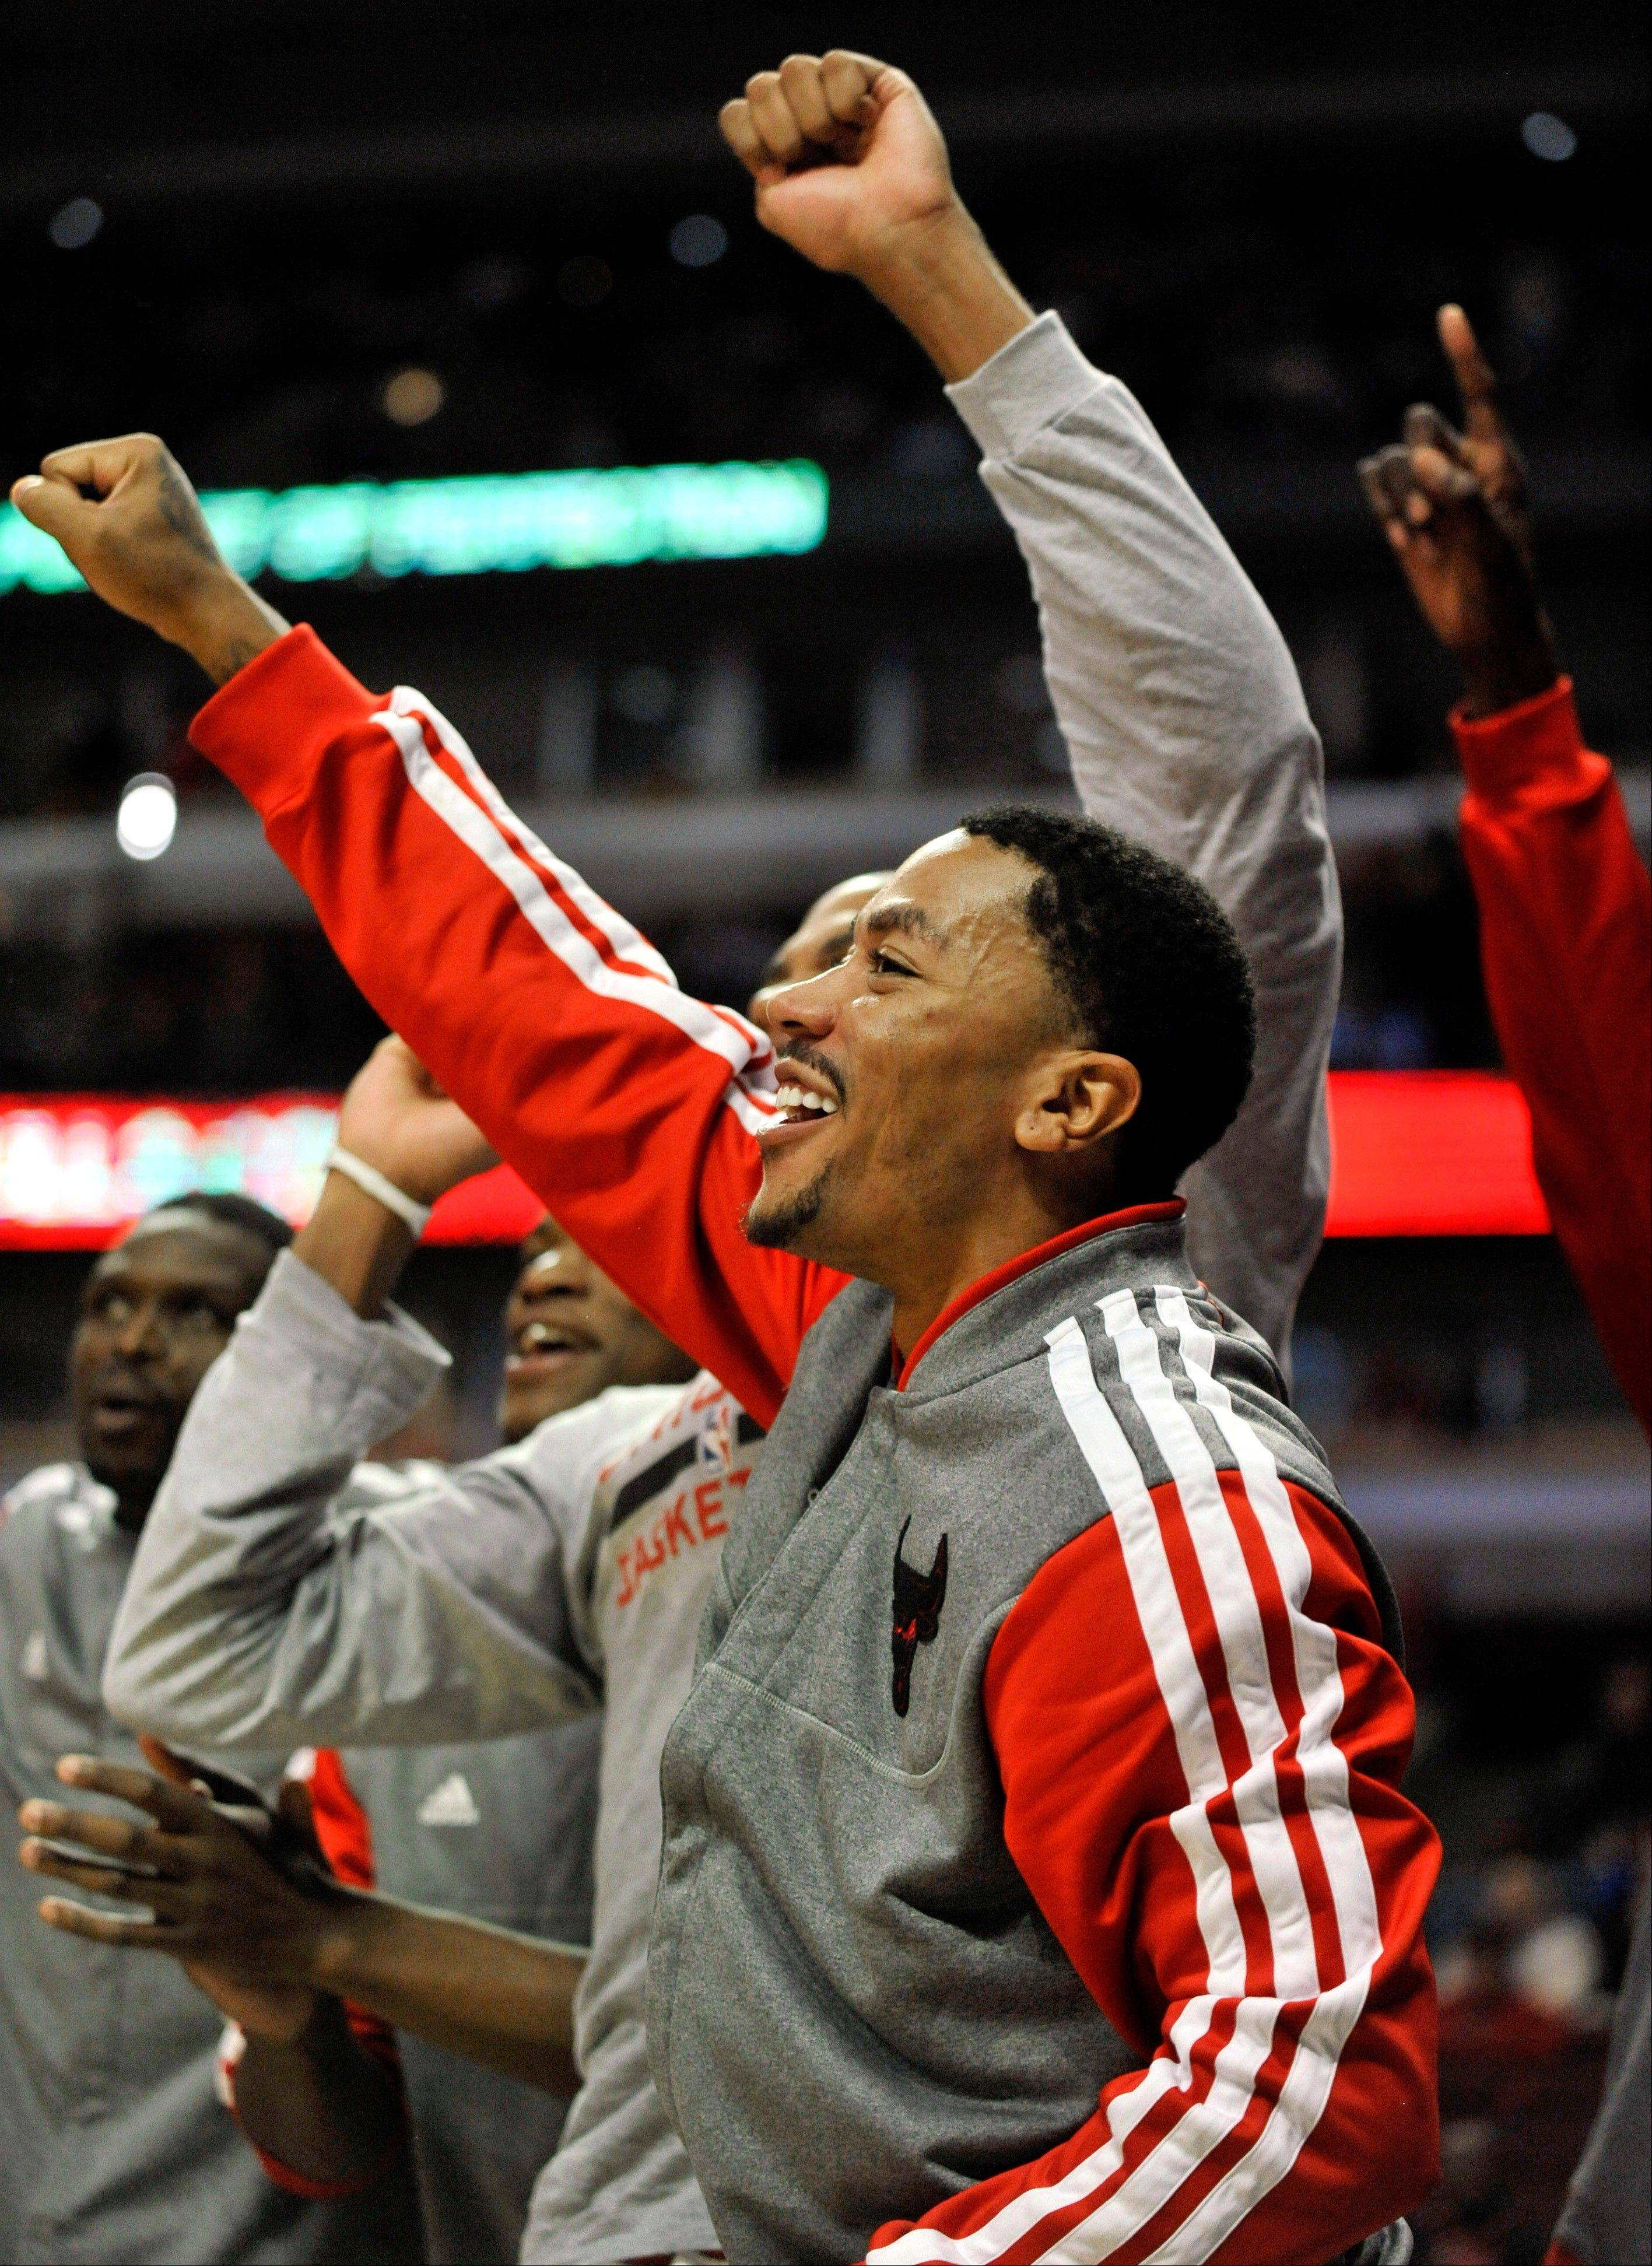 Derrick Rose celebrates while on the bench during the final minutes of a preseason win over Milwaukee on Monday night at the United Center.